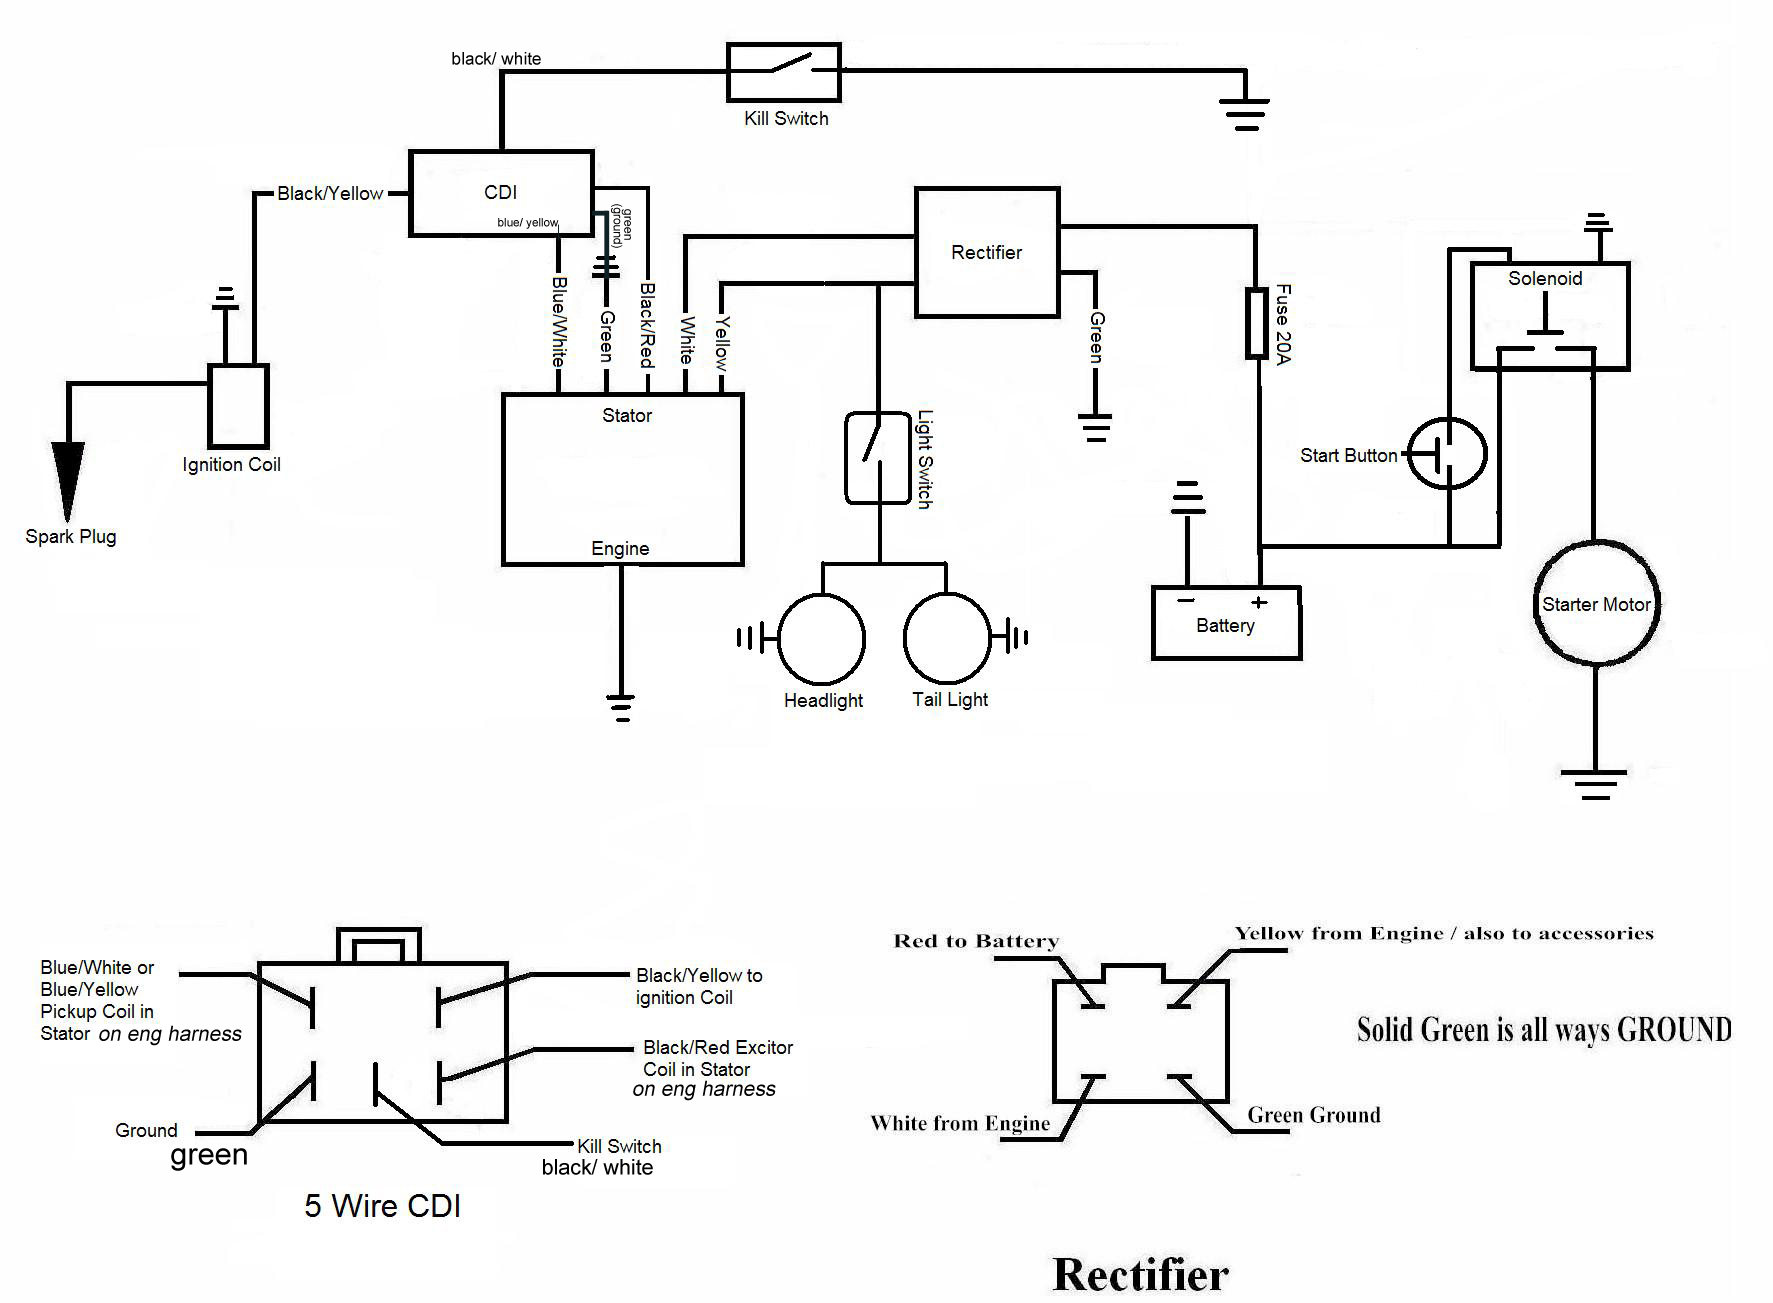 Honda 110 Wiring Diagram | Wiring Liry on harley wiring color codes, harley crankcase, harley stator wiring, harley trunk latch, harley choke lever, harley bluetooth interface, harley motorcycle stereo amplifier, harley dash wiring, harley belly pan, harley timing chain, harley wiring tools, harley banjo bolt, harley wiring kit, harley dash kit, harley clutch rod, harley clutch diaphragm spring, harley tow bar, harley wiring connectors, harley headlight harness, harley headlight adapter,